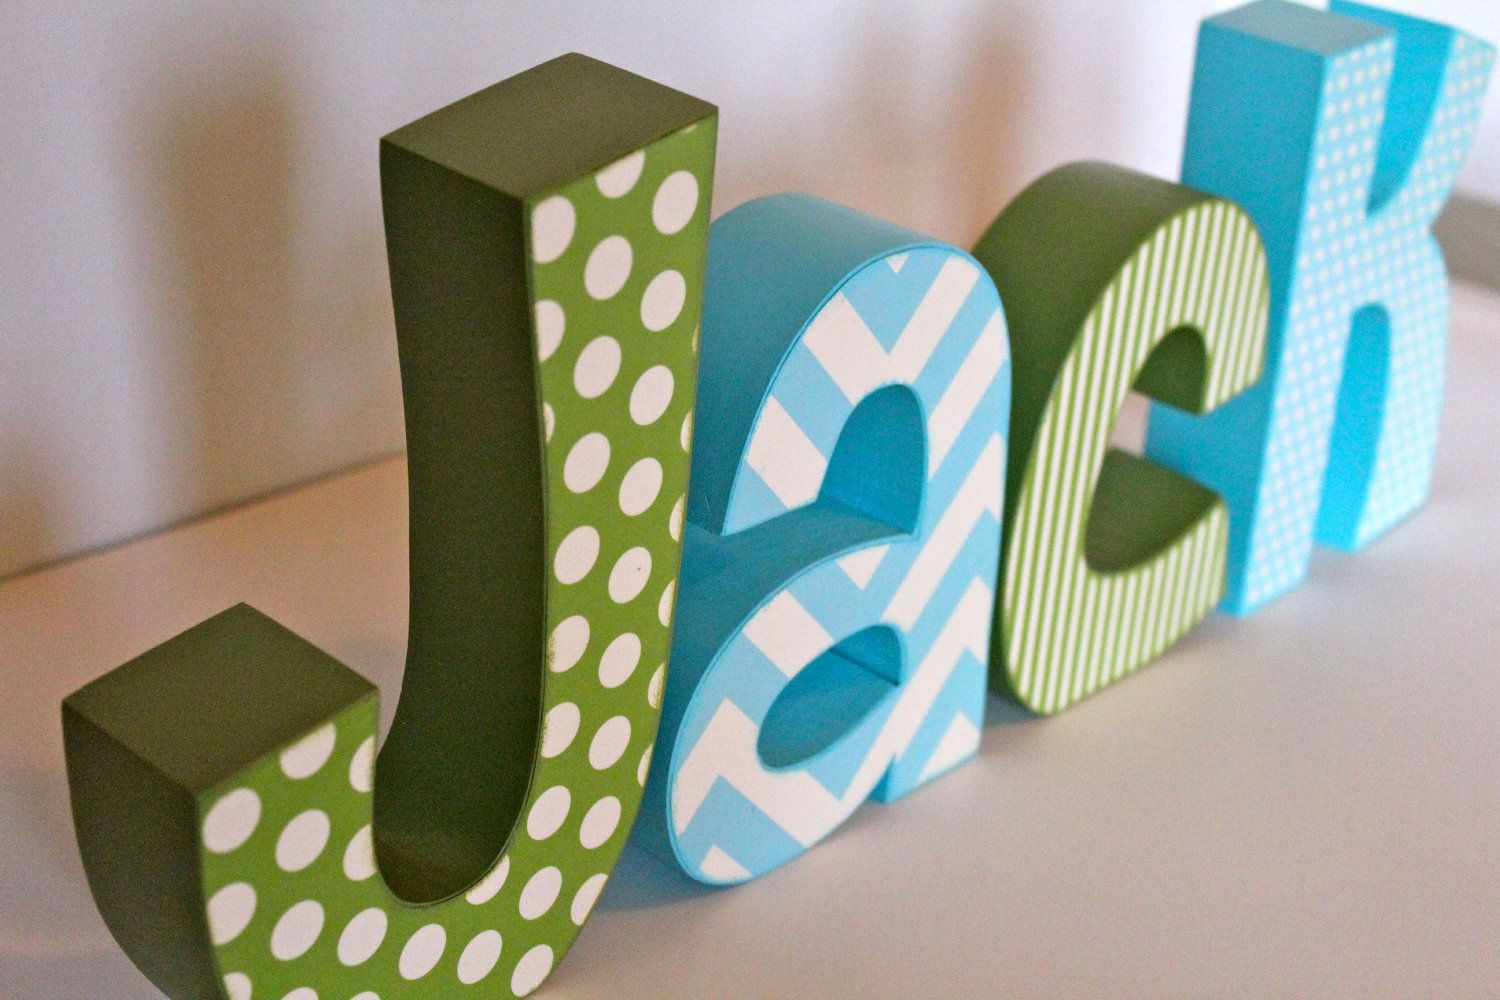 Bedroom Decor Letters nursery decor - letter decoration | diy | pinterest | letters